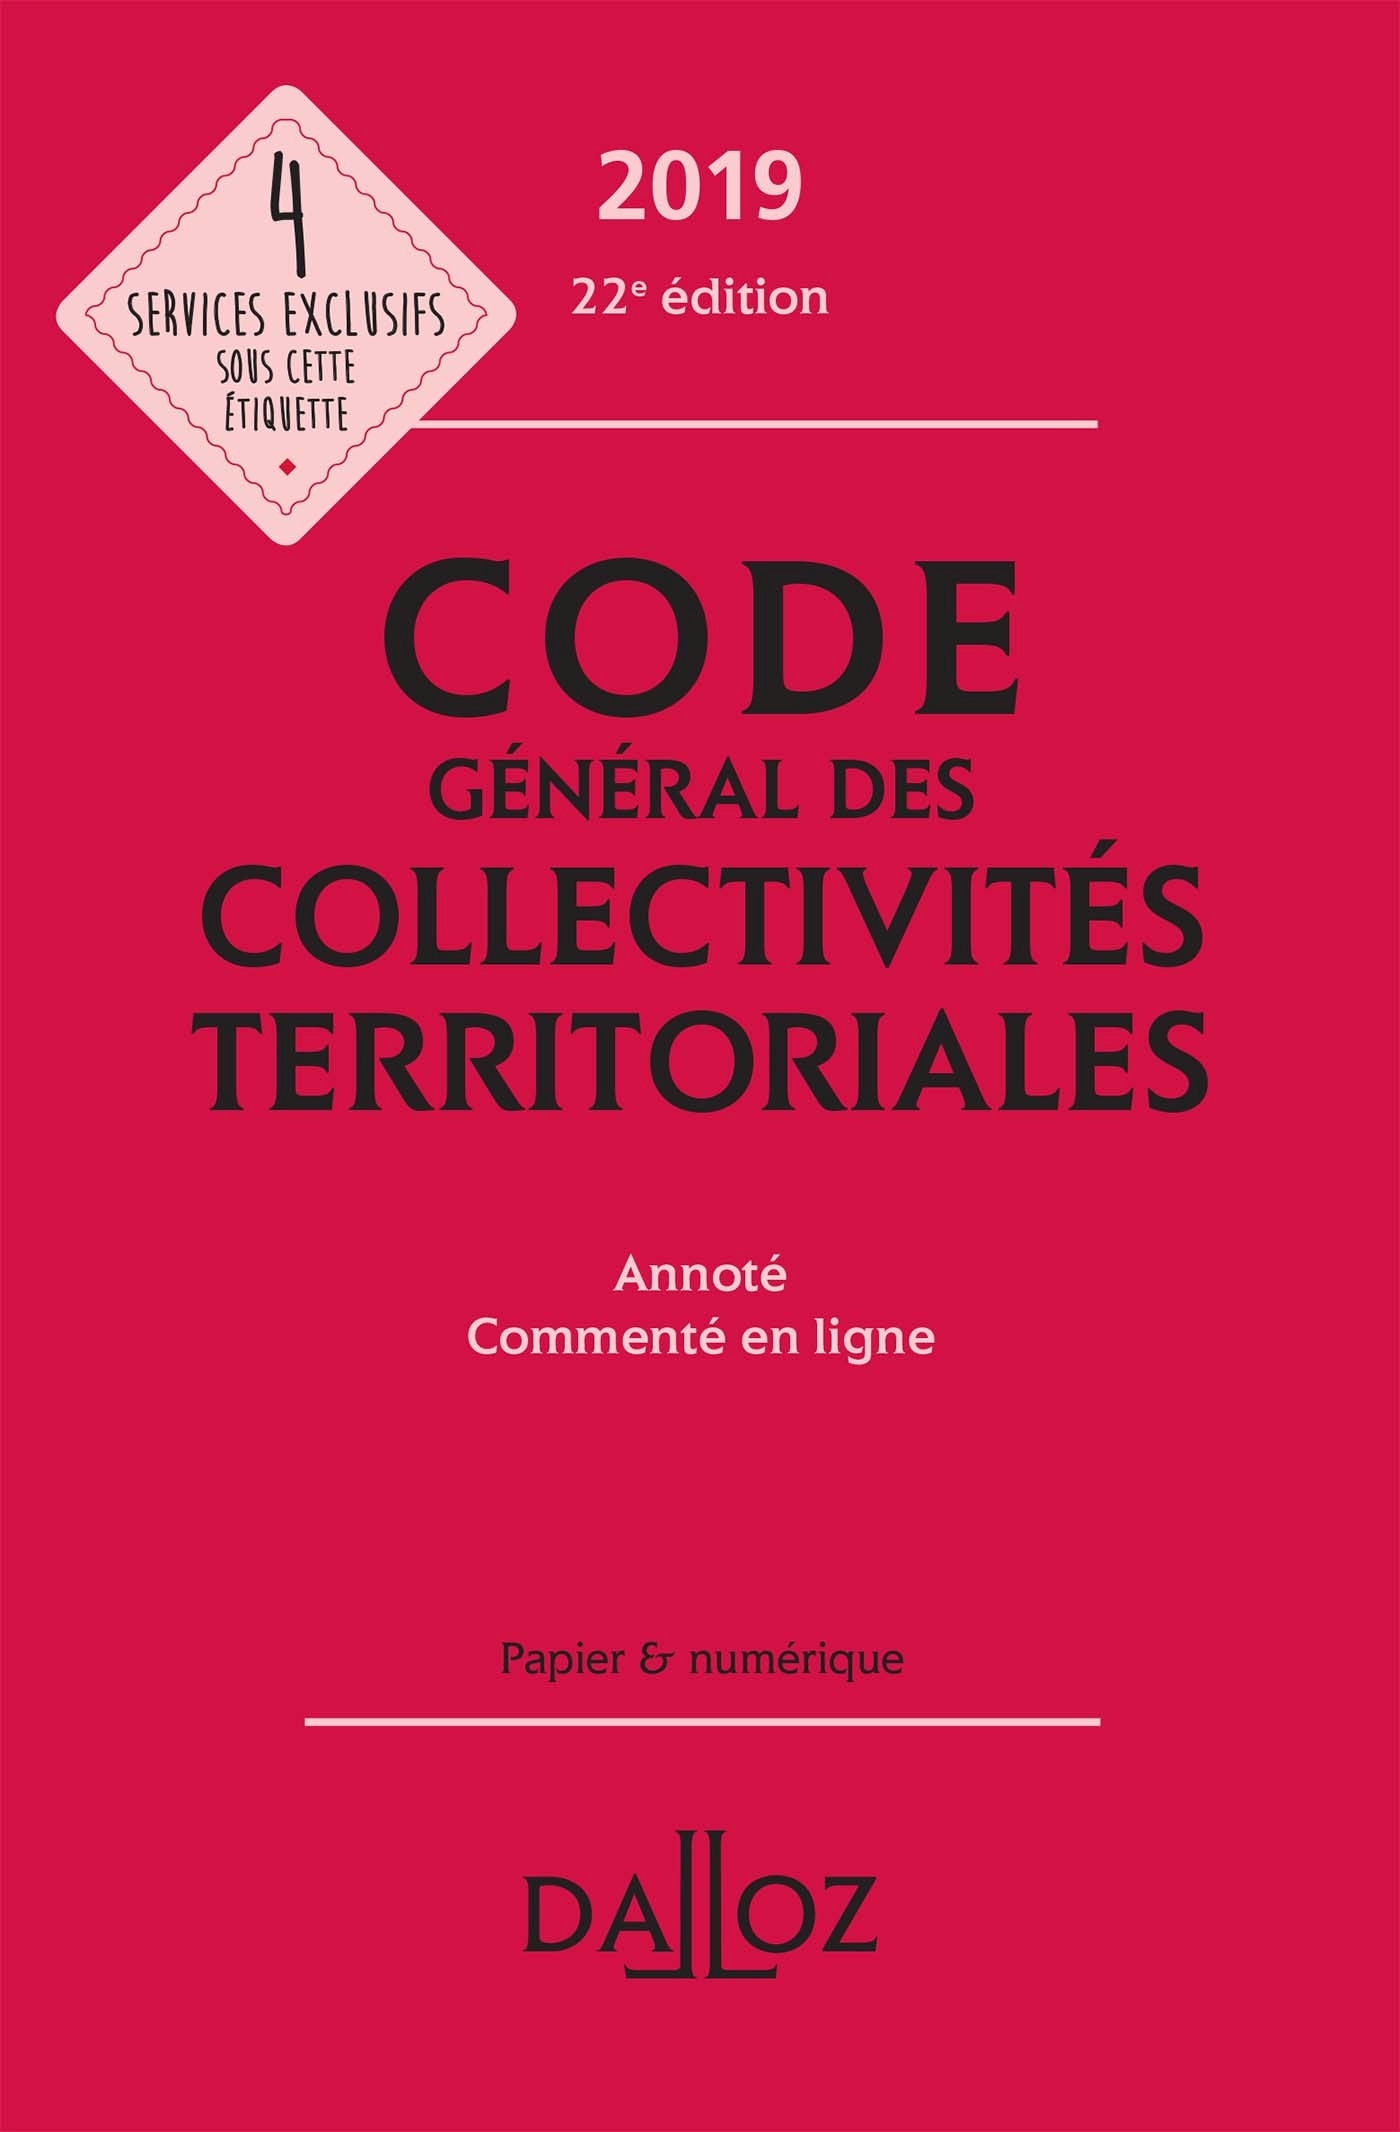 CODE GENERAL DES COLLECTIVITES TERRITORIALES 2019, ANNOTE - 22E ED.